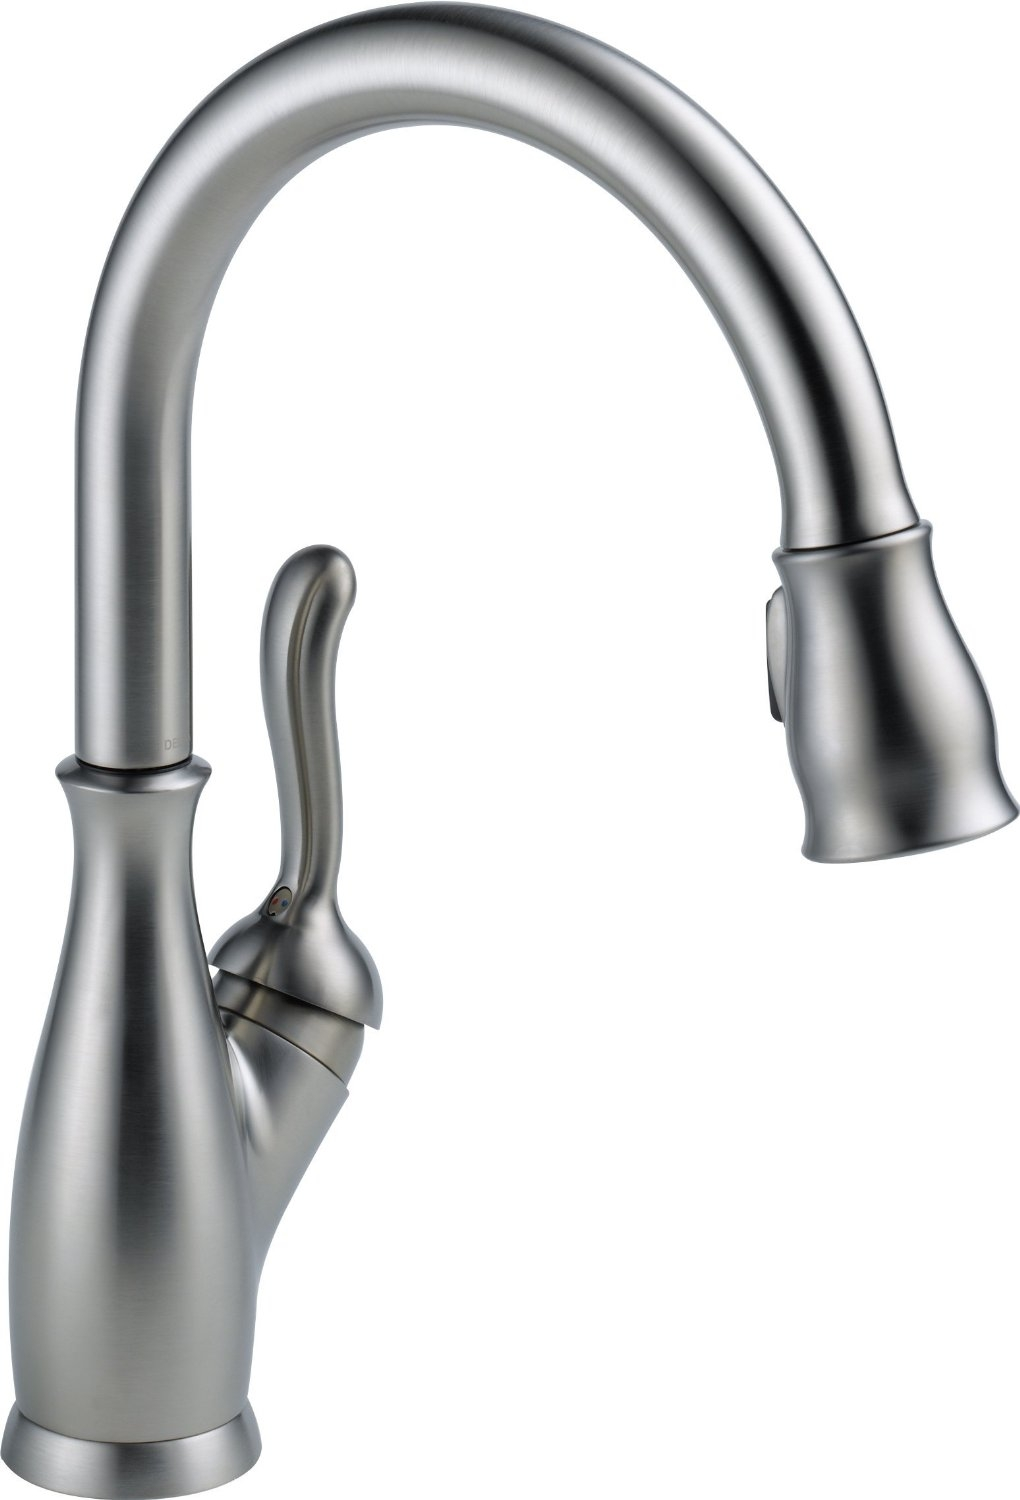 best pull down kitchen faucet 2013 best pull down kitchen faucet 2013 whats the best pull down kitchen faucet faucetshub 1020 x 1500